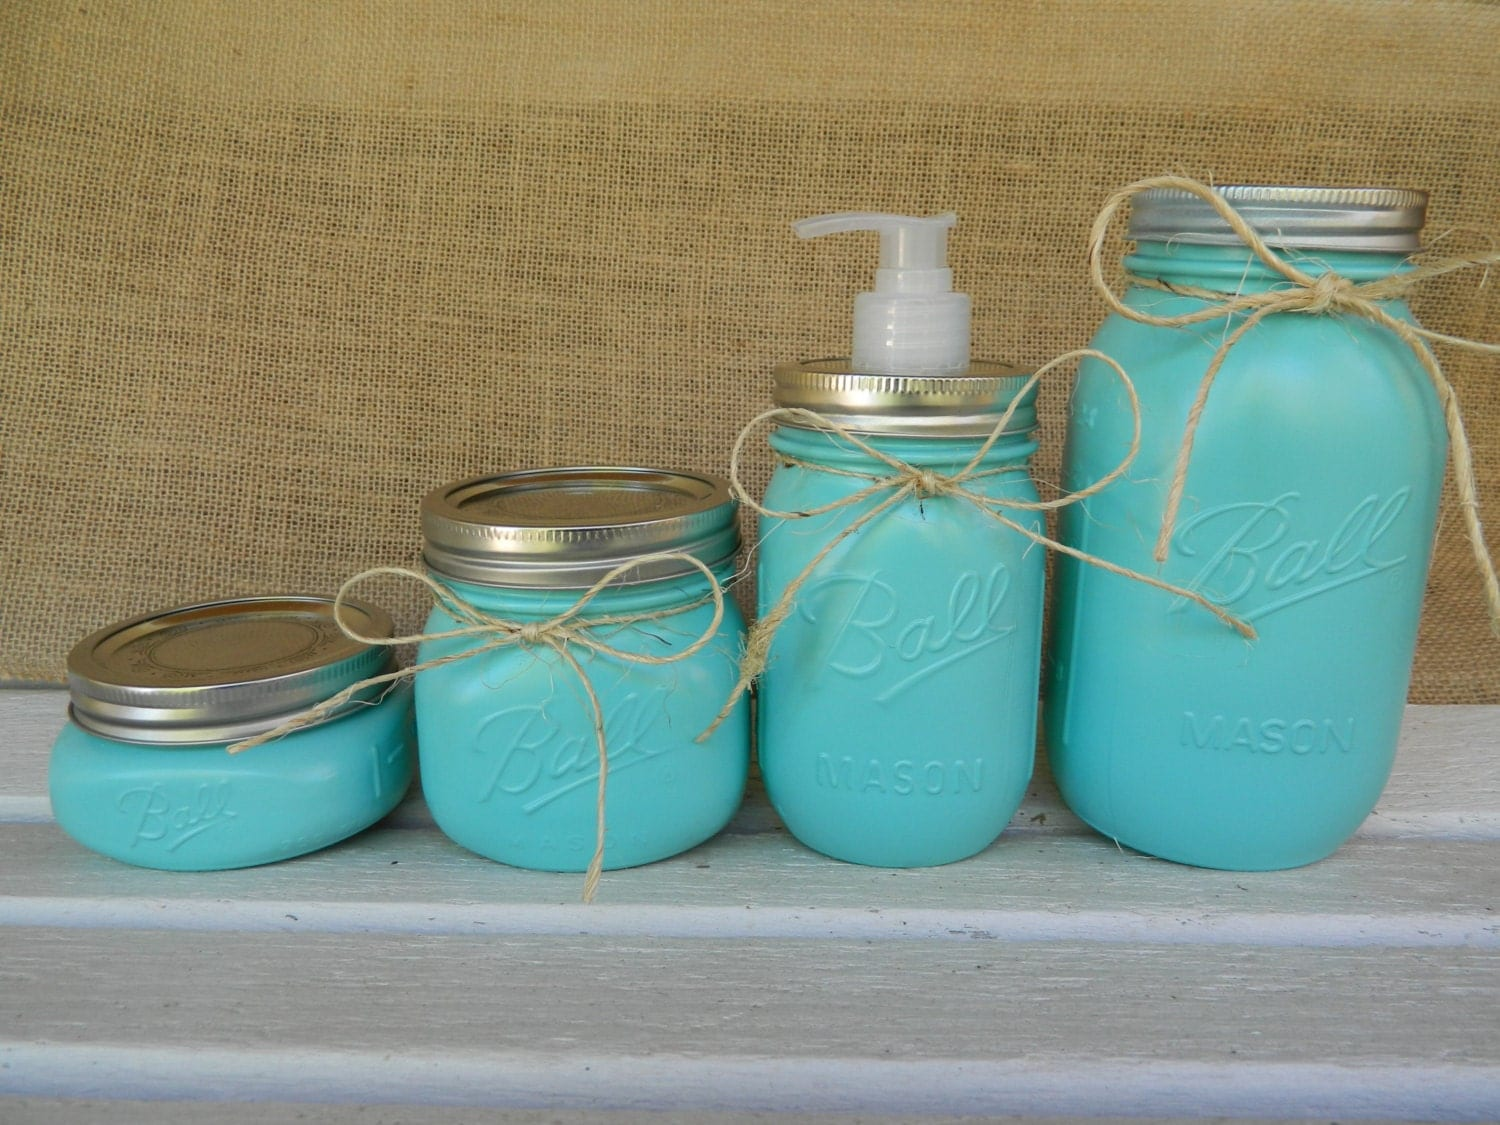 Mason jar bathroom set home decor ball jar mason jar for Bathroom decor mason jars